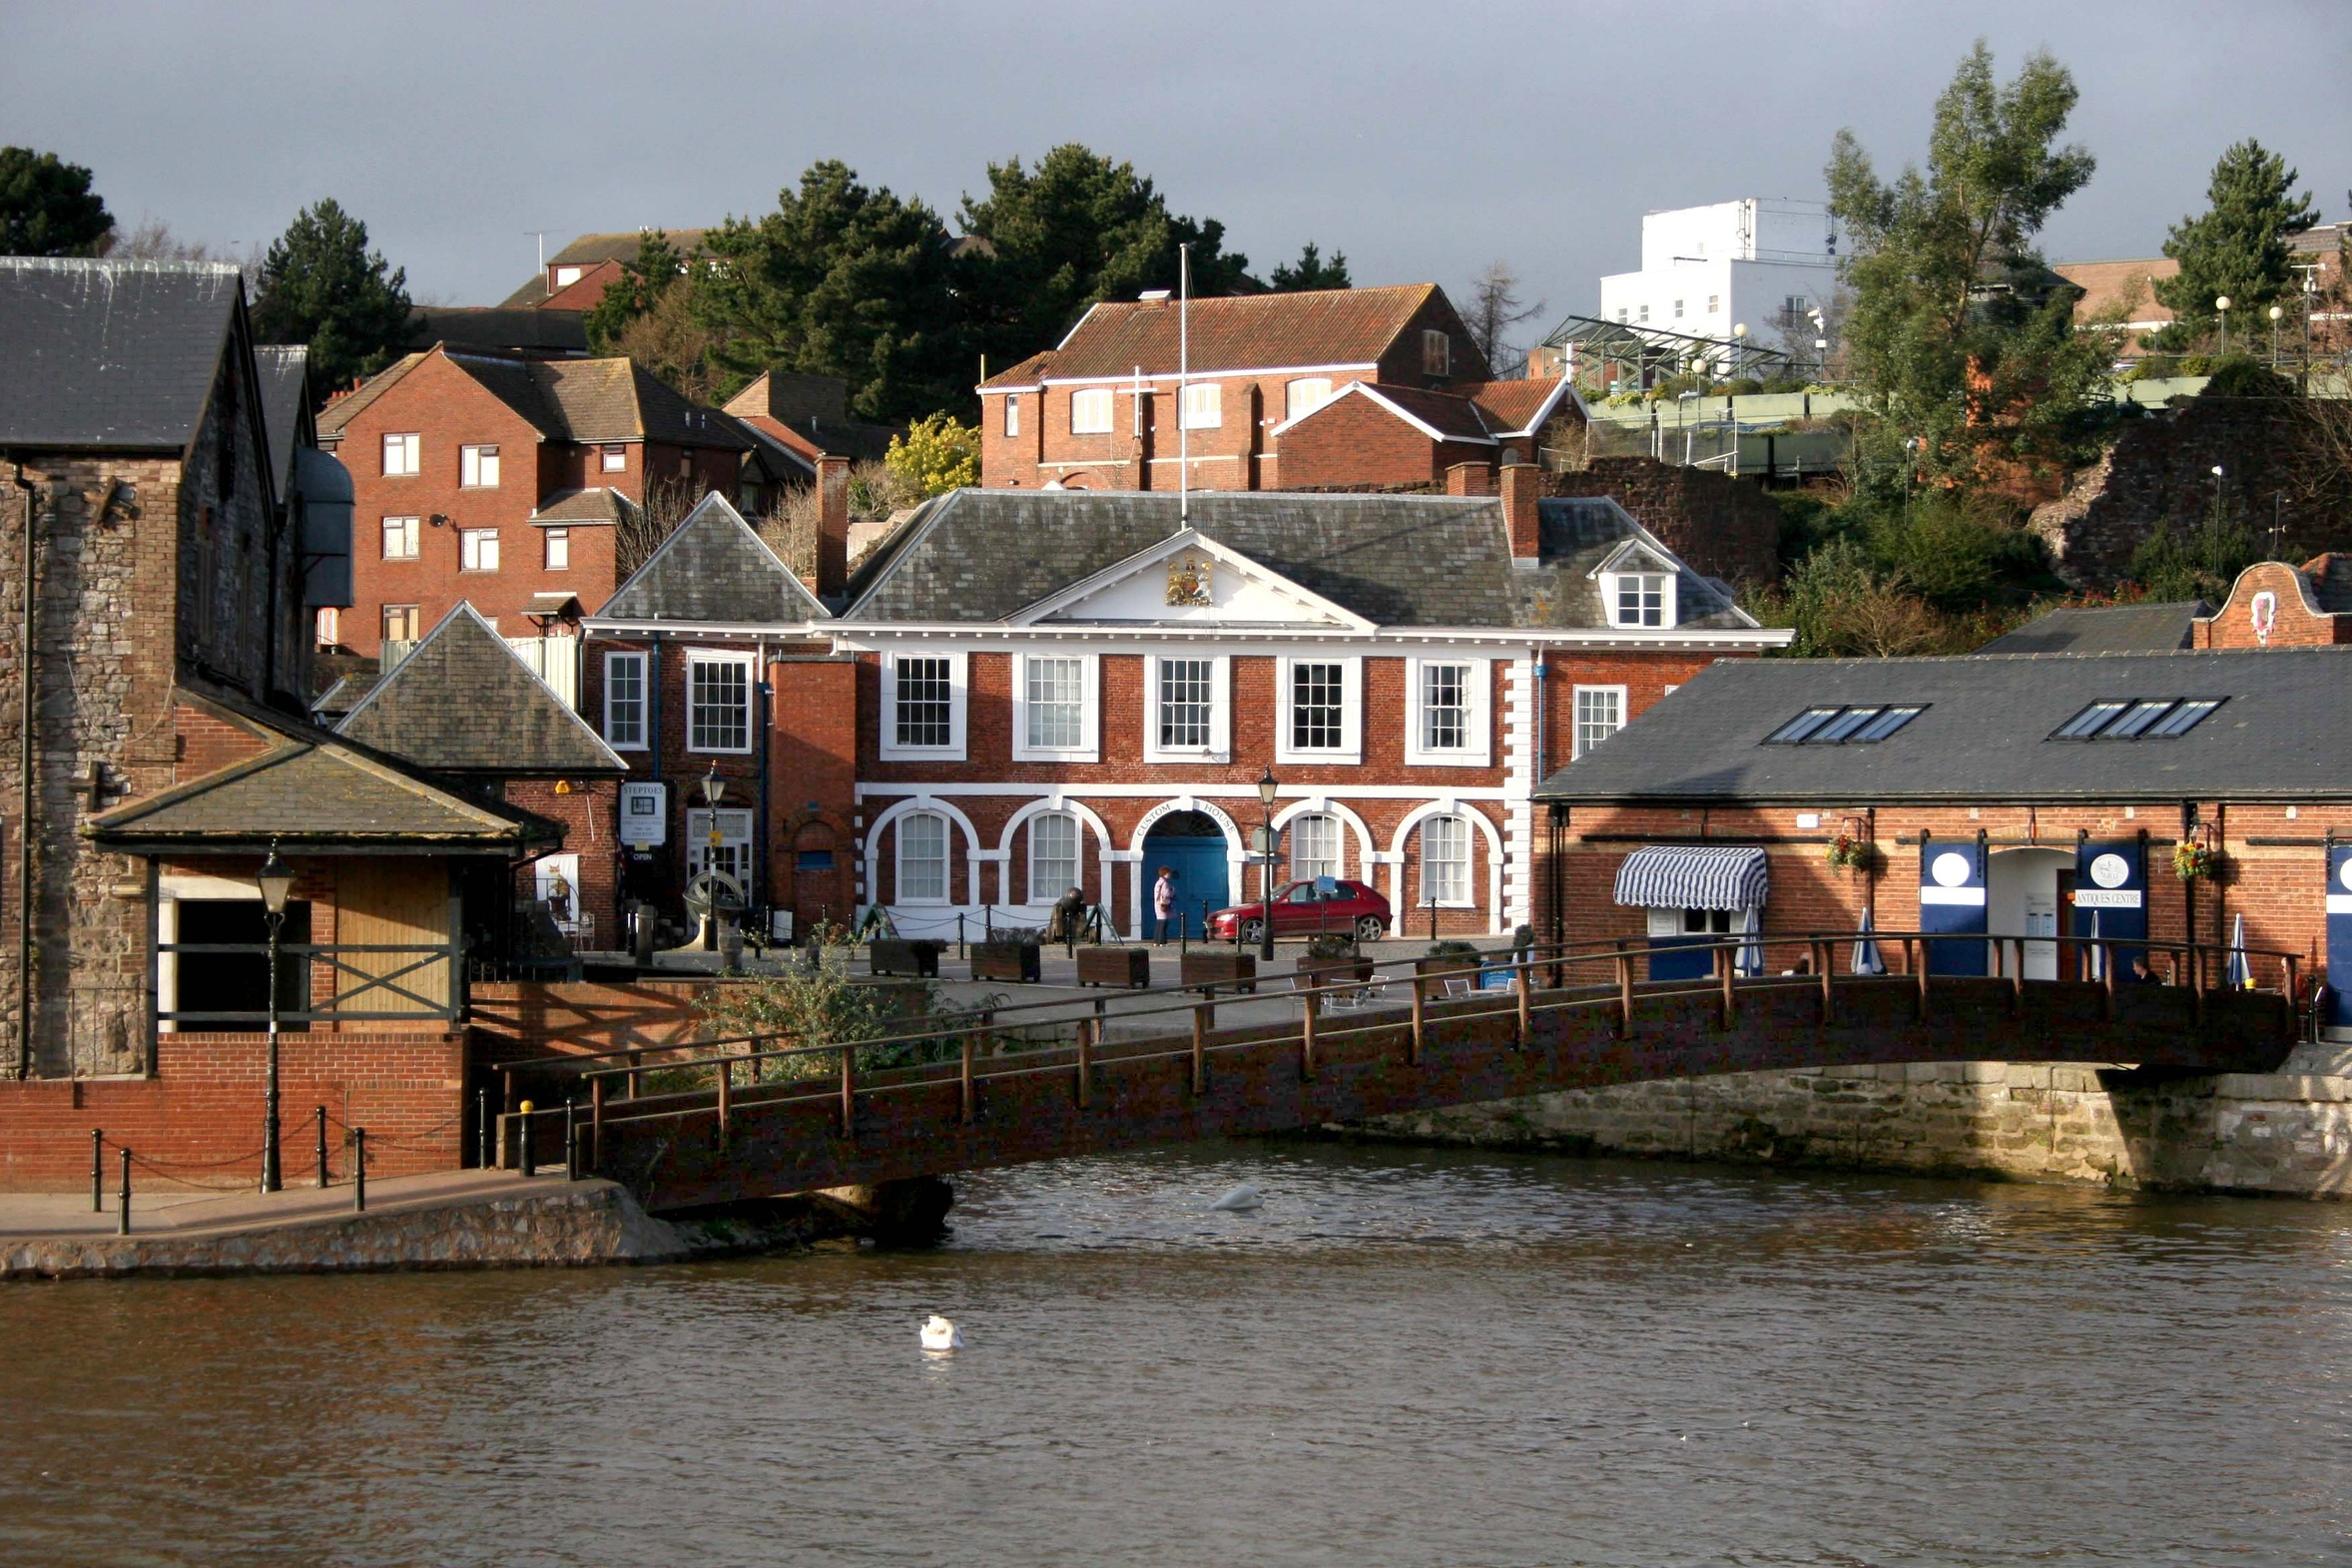 Photograph of Exeter's 17th-century Custom House by the quay.